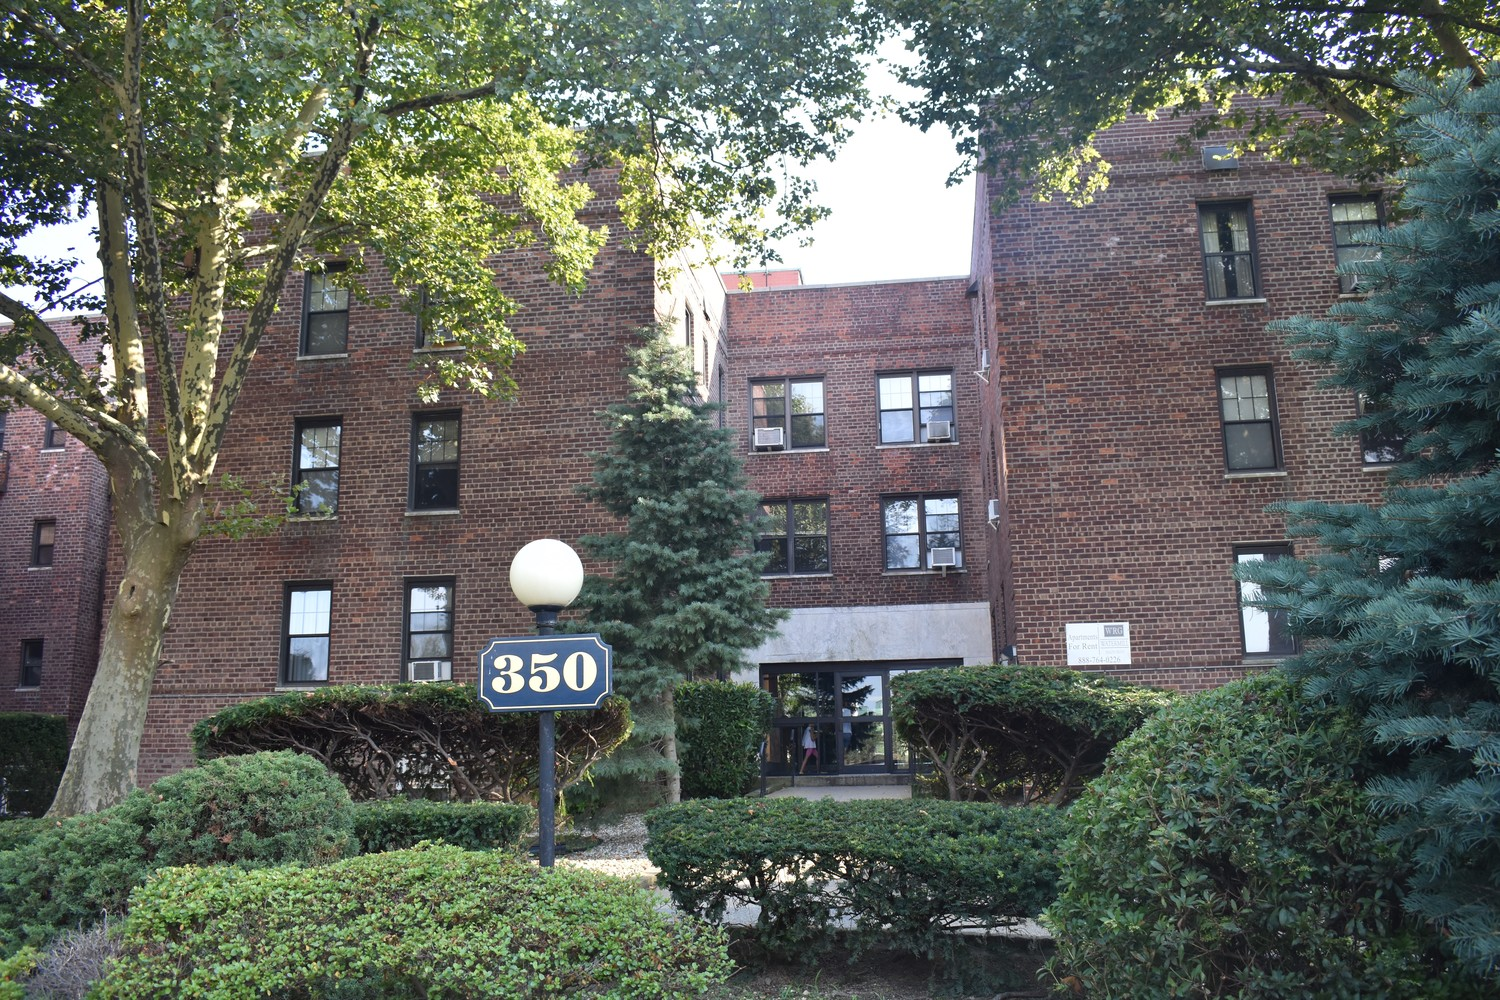 Some tenants of the apartment building at 350 Merrick Road are urging the village to apologize for the way it handled a power outage last month.